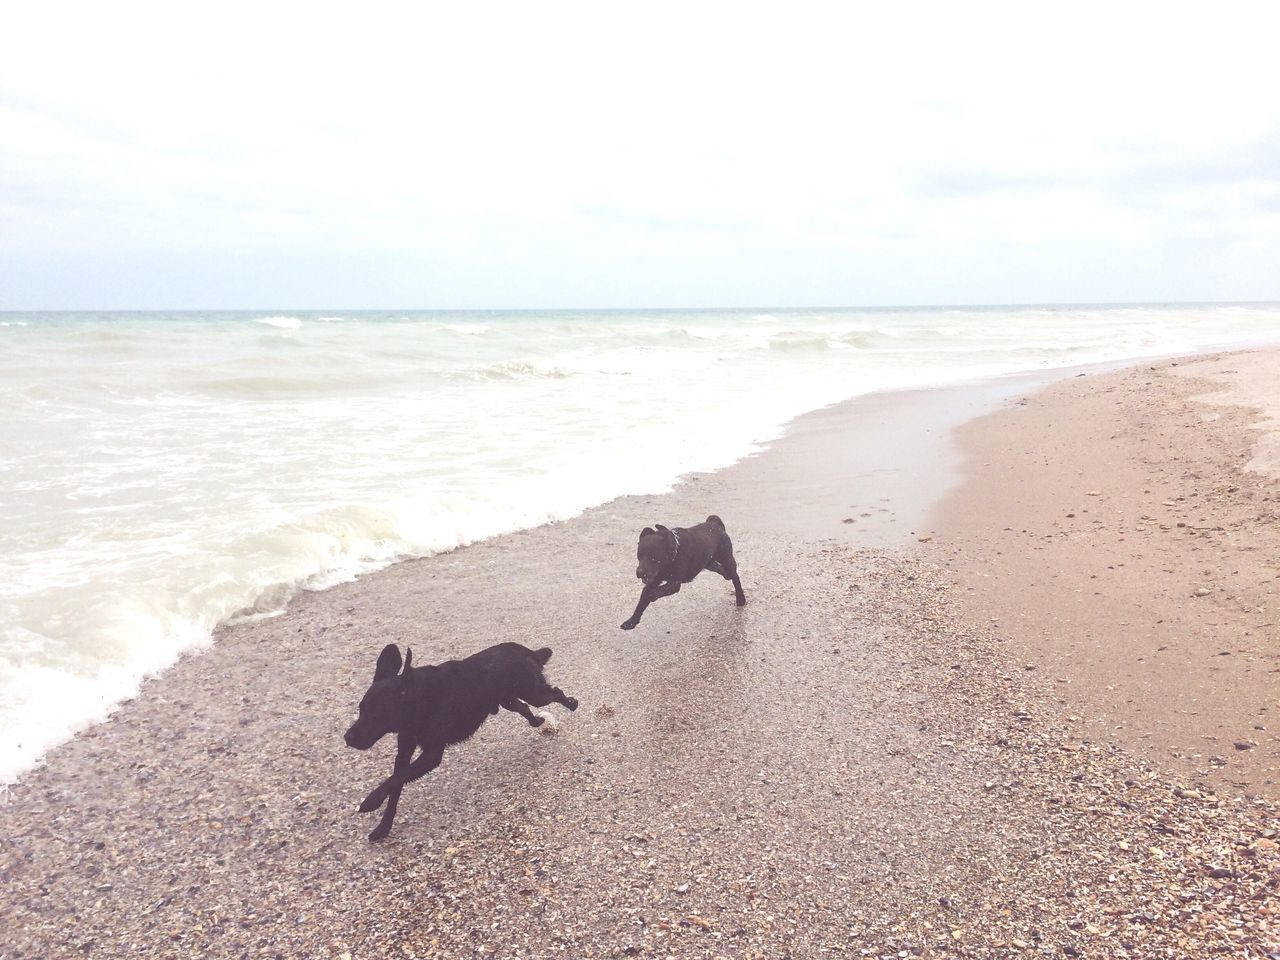 dog, beach, sea, pets, domestic animals, sand, mammal, animal themes, nature, water, horizon over water, running, one animal, no people, sky, outdoors, day, beauty in nature, scenics, full length